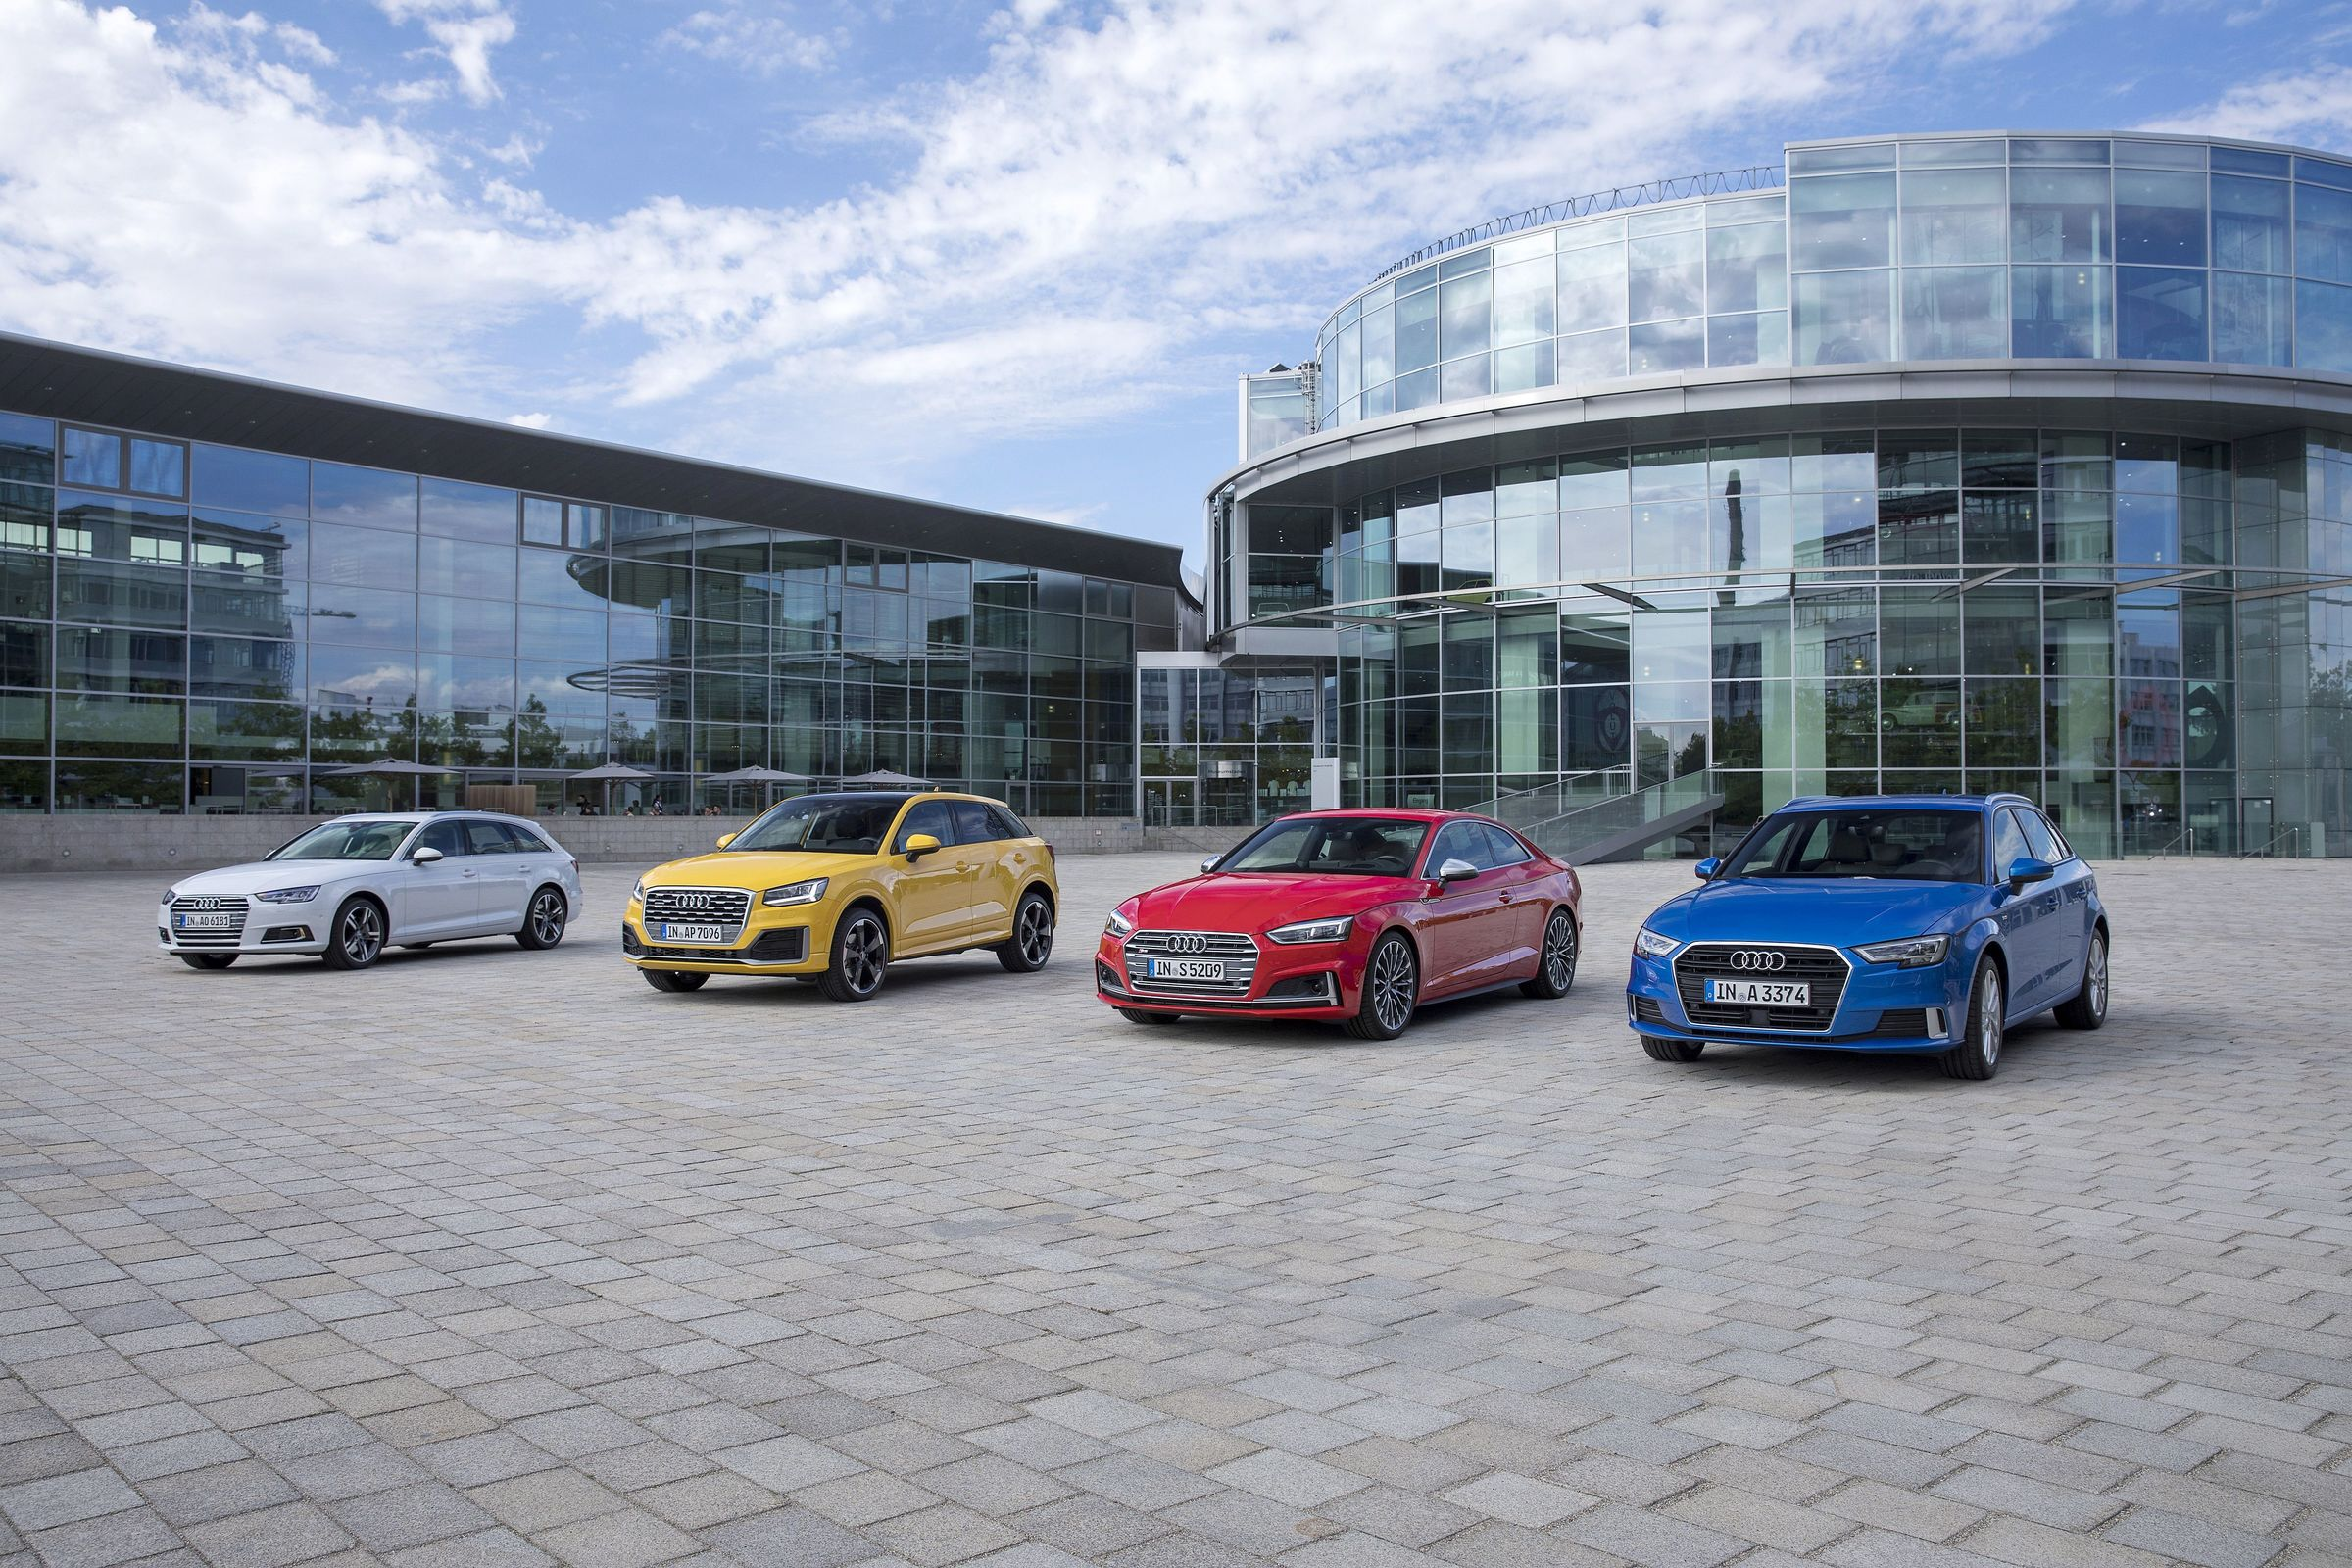 Audi Q2, Audi A3, Audi A4 and Audi A5 are produced at the headquarters of AUDI AG in Ingolstadt